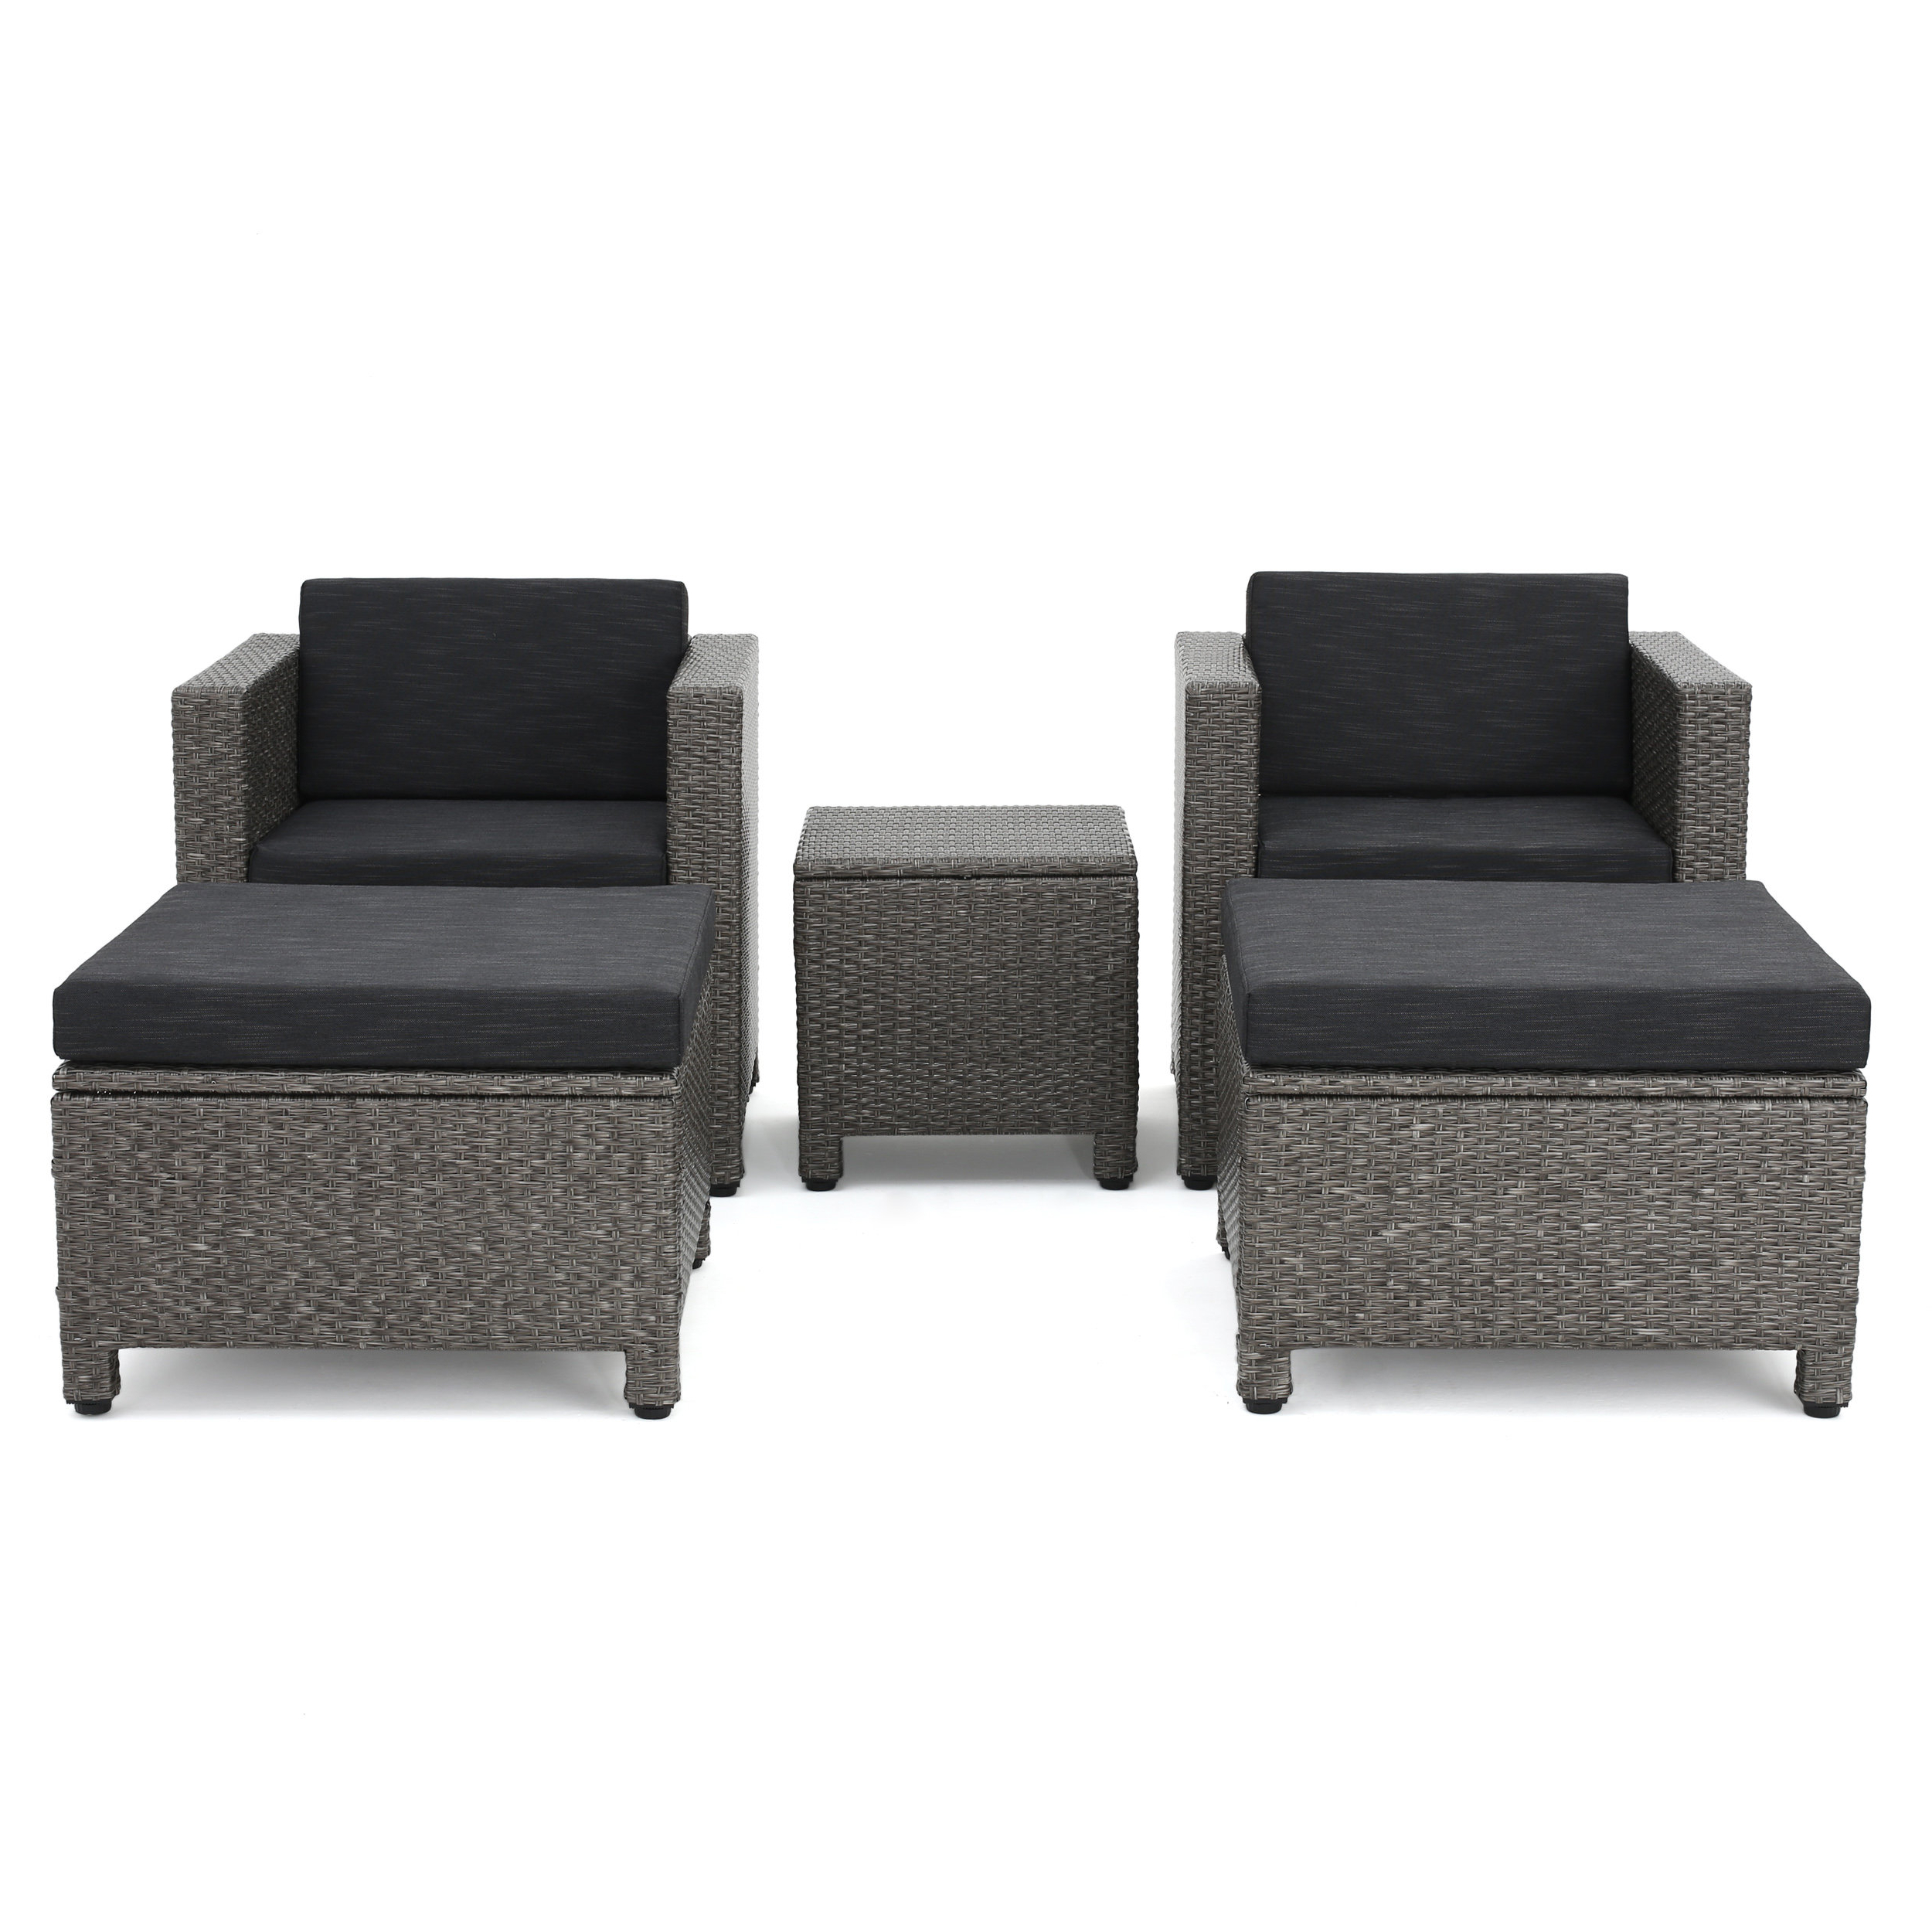 Furst Patio Sofas With Cushion Inside Well Known Furst 5 Piece Rattan Seating Group With Cushions (View 13 of 20)